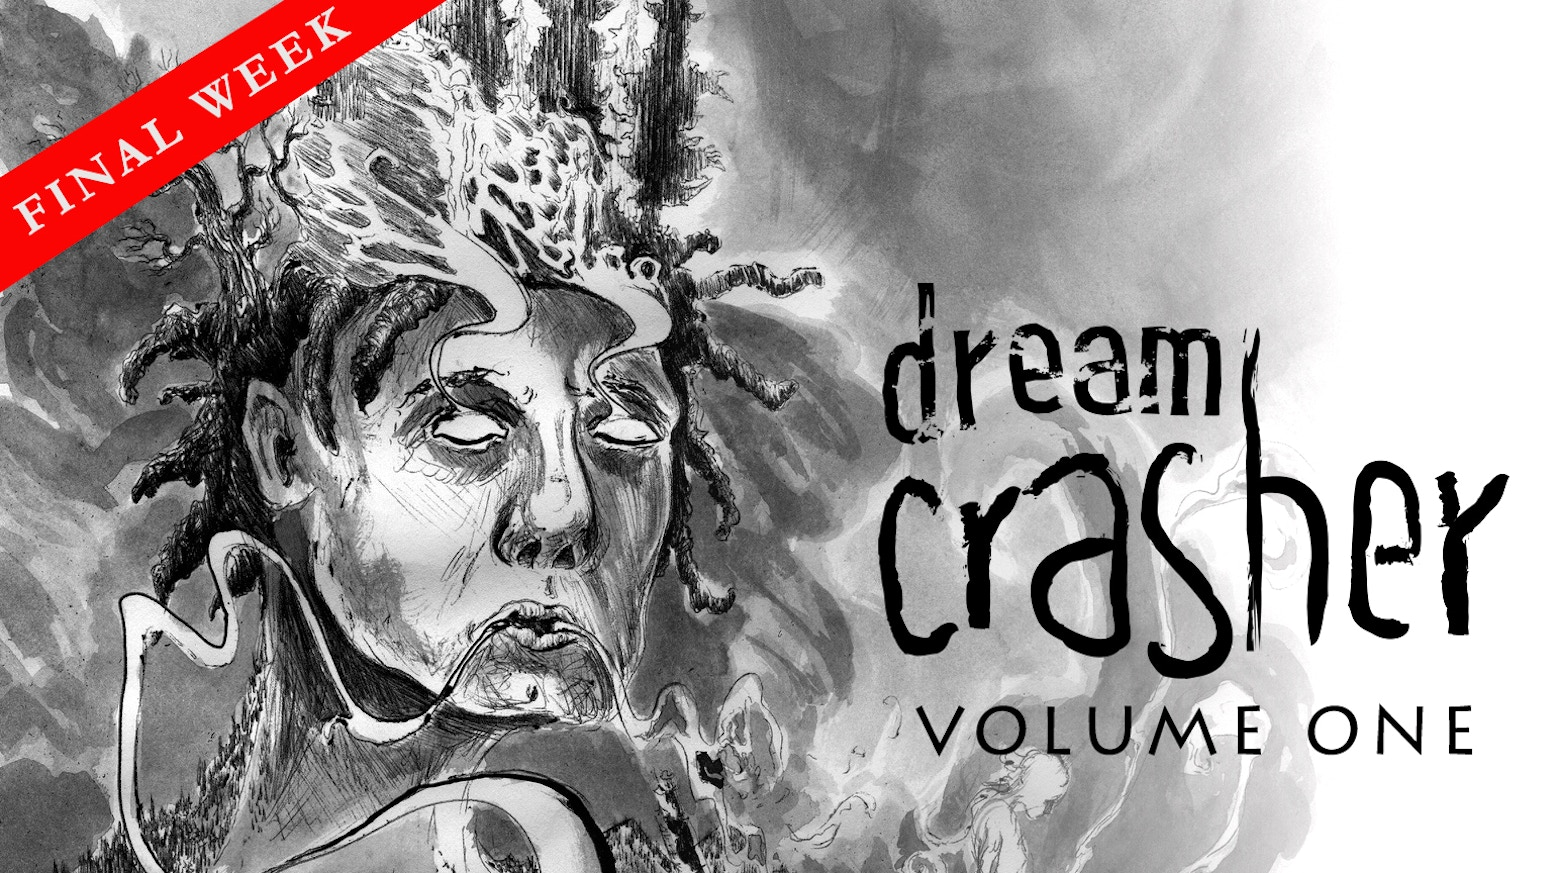 A 130 page trade paperback collection of Dream Crasher Volume 1, collecting chapters 1-4 into a single affordable volume.